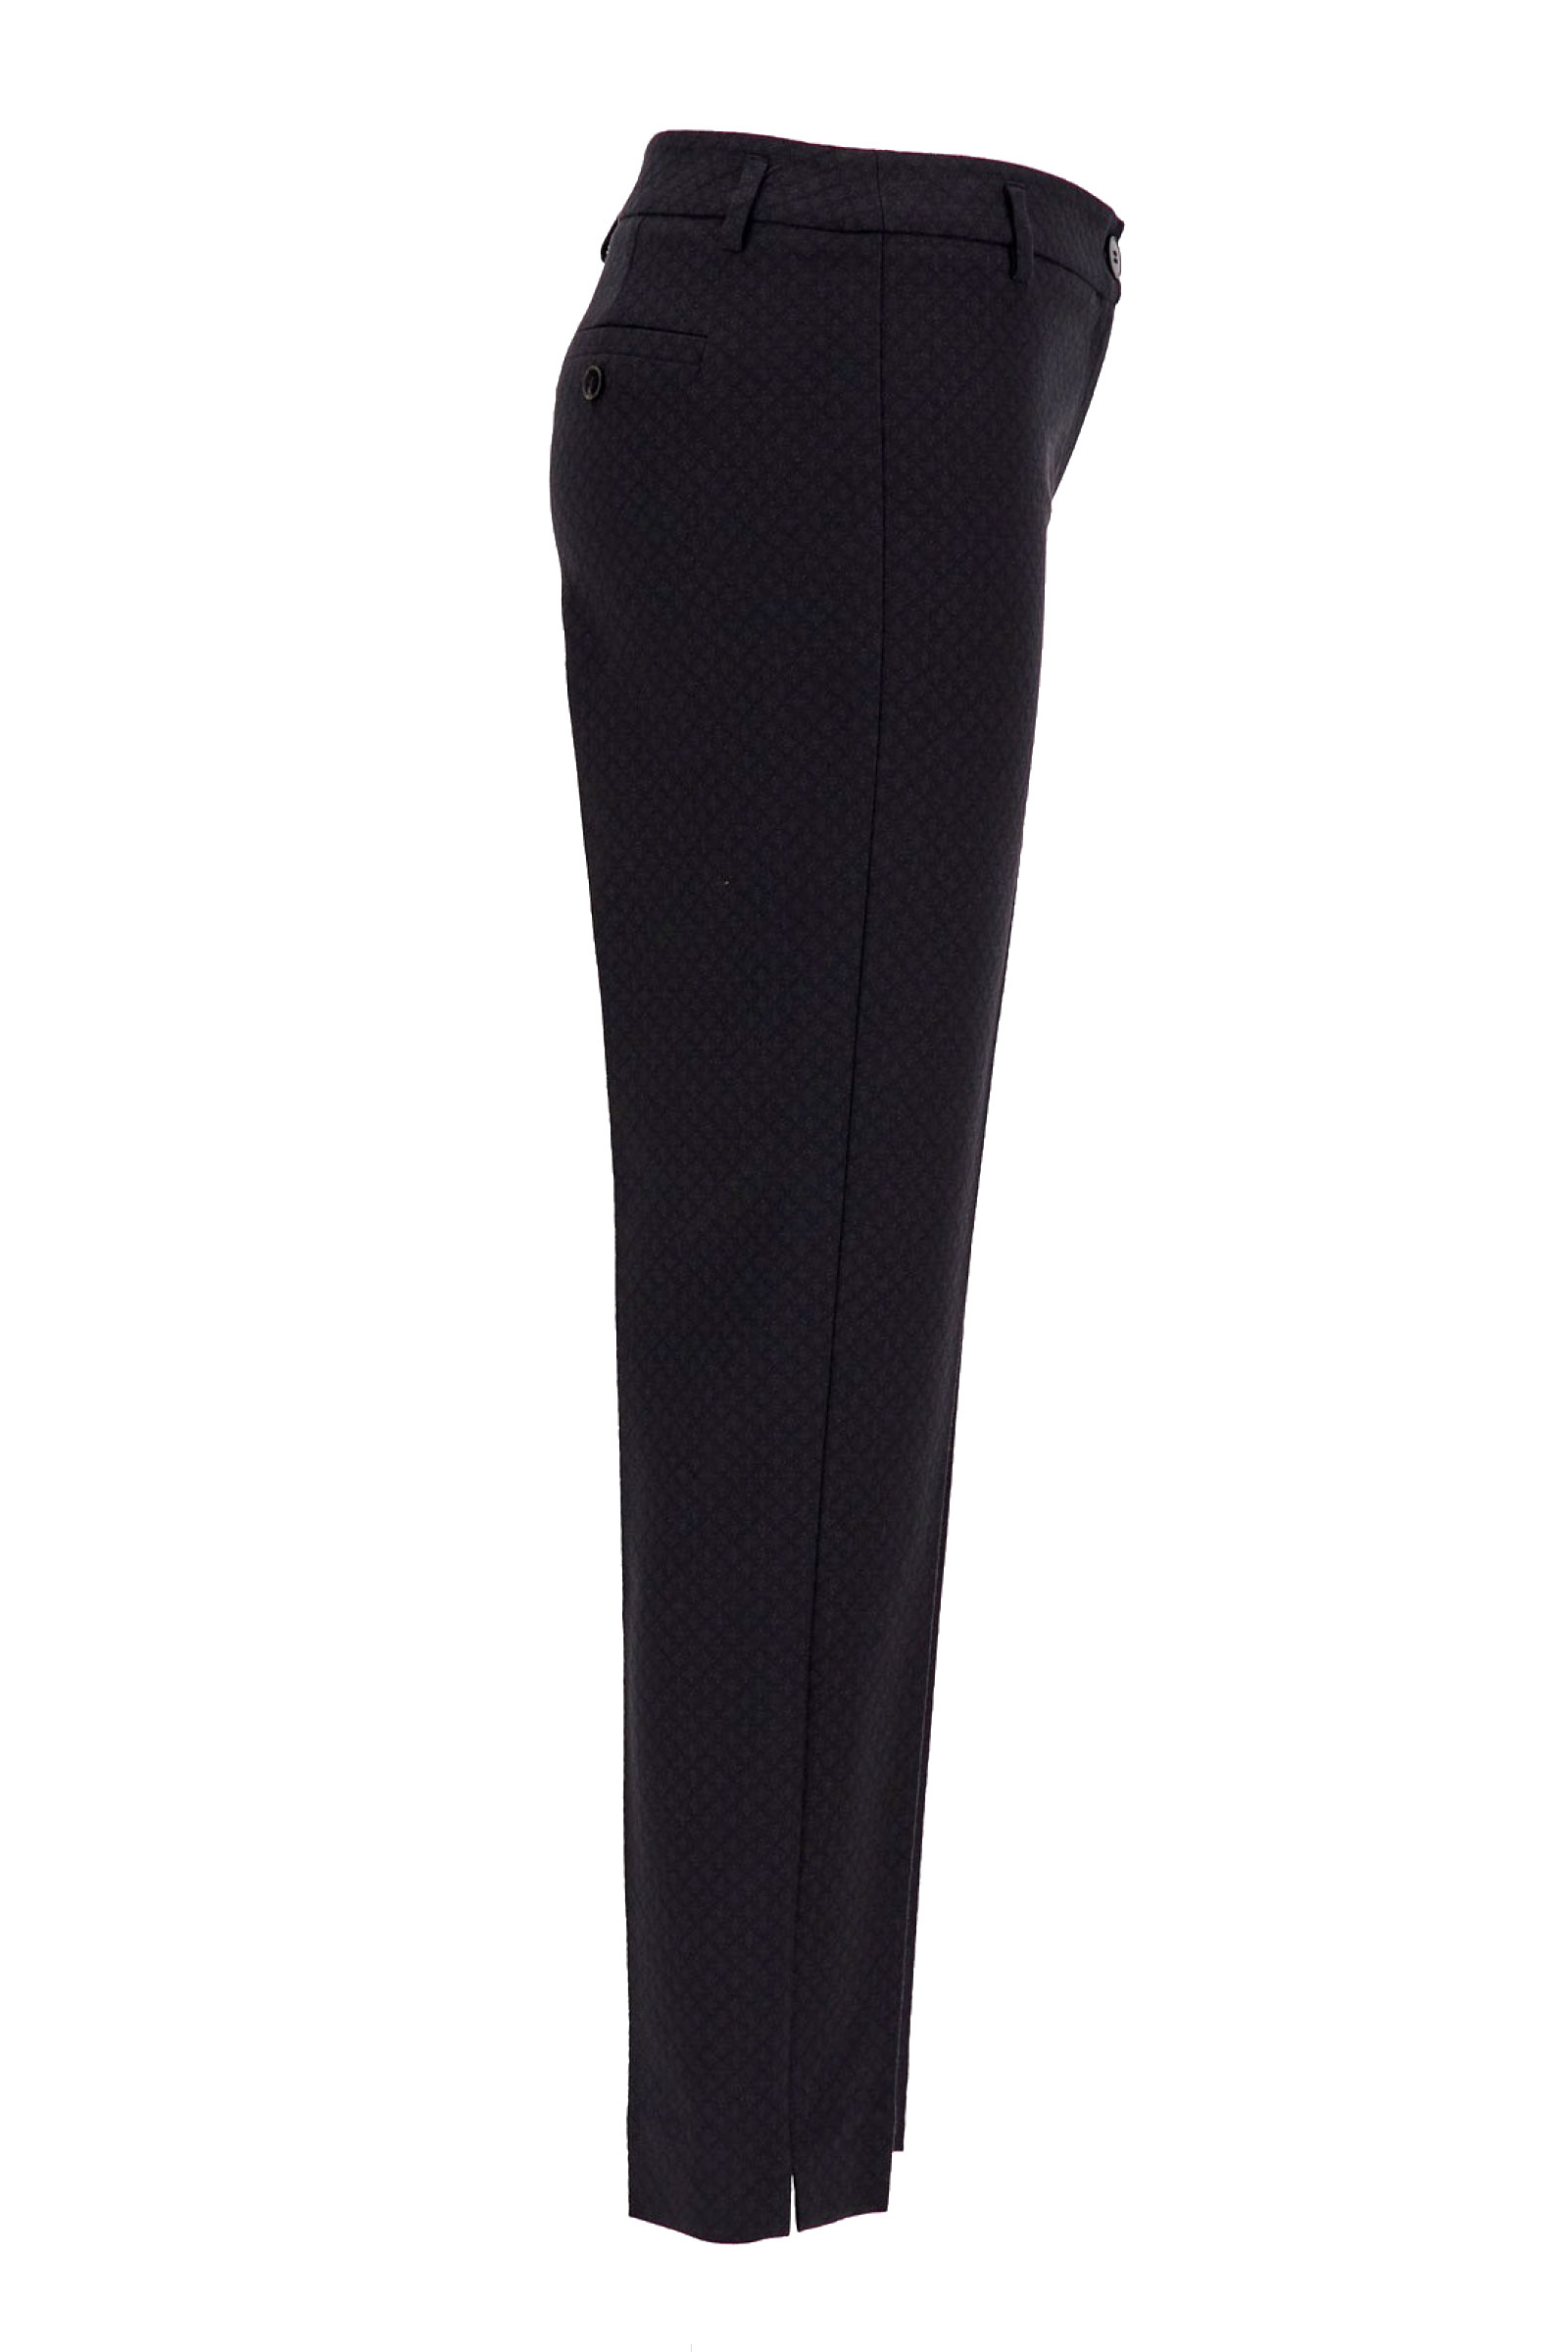 EMME MARELLA   Trousers   51361219200002